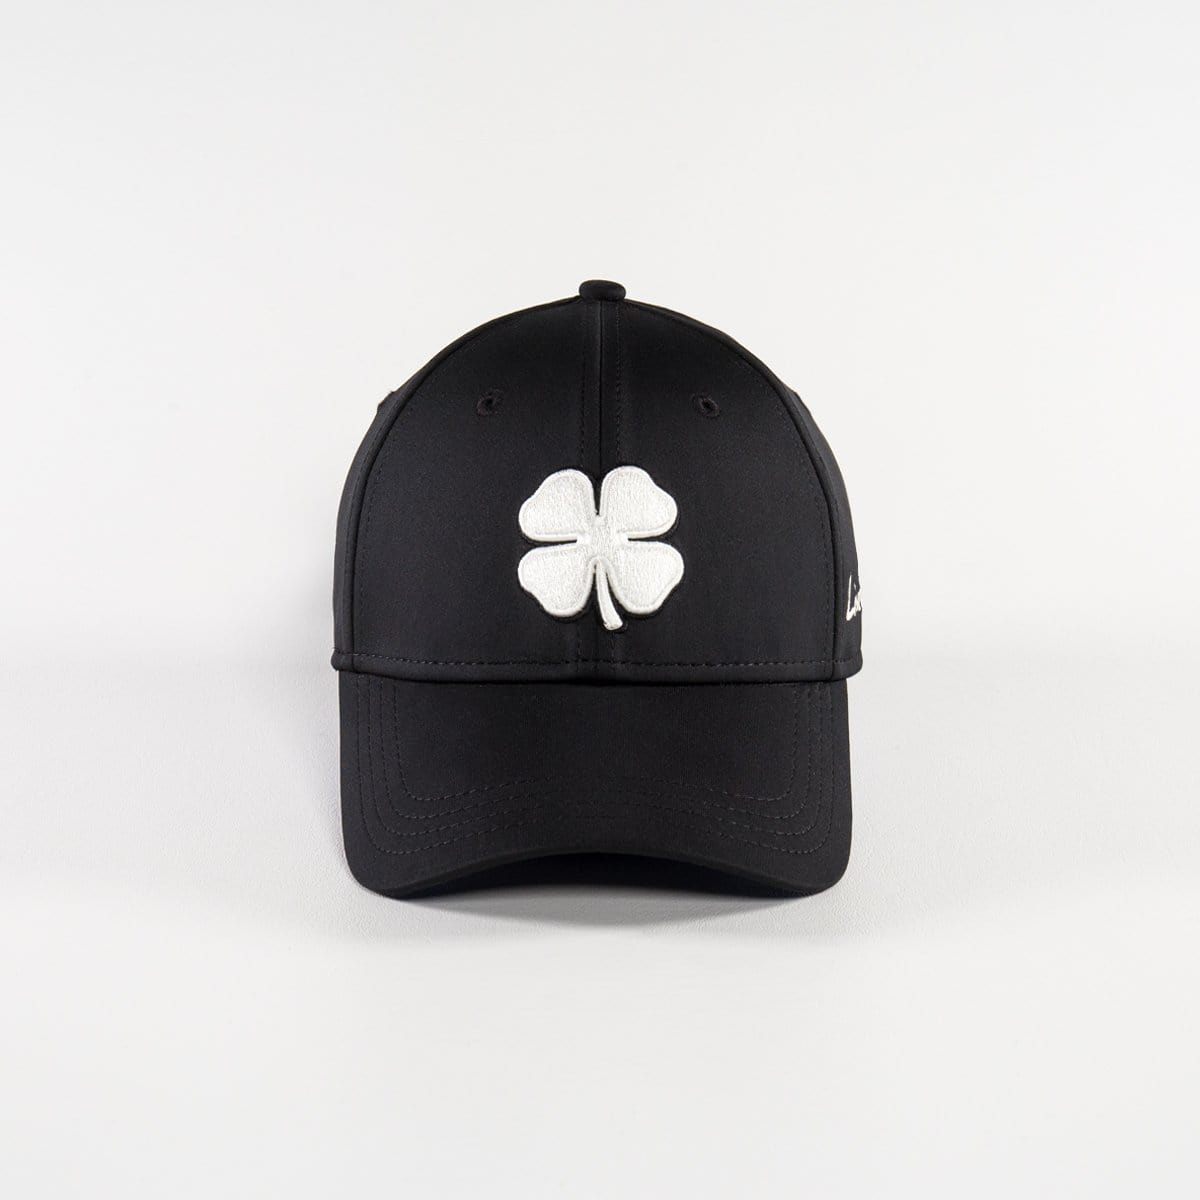 Black Clover Baseball Caps Premium Clover 41 equestrian team apparel online tack store mobile tack store custom farm apparel custom show stable clothing equestrian lifestyle horse show clothing riding clothes horses equestrian tack store